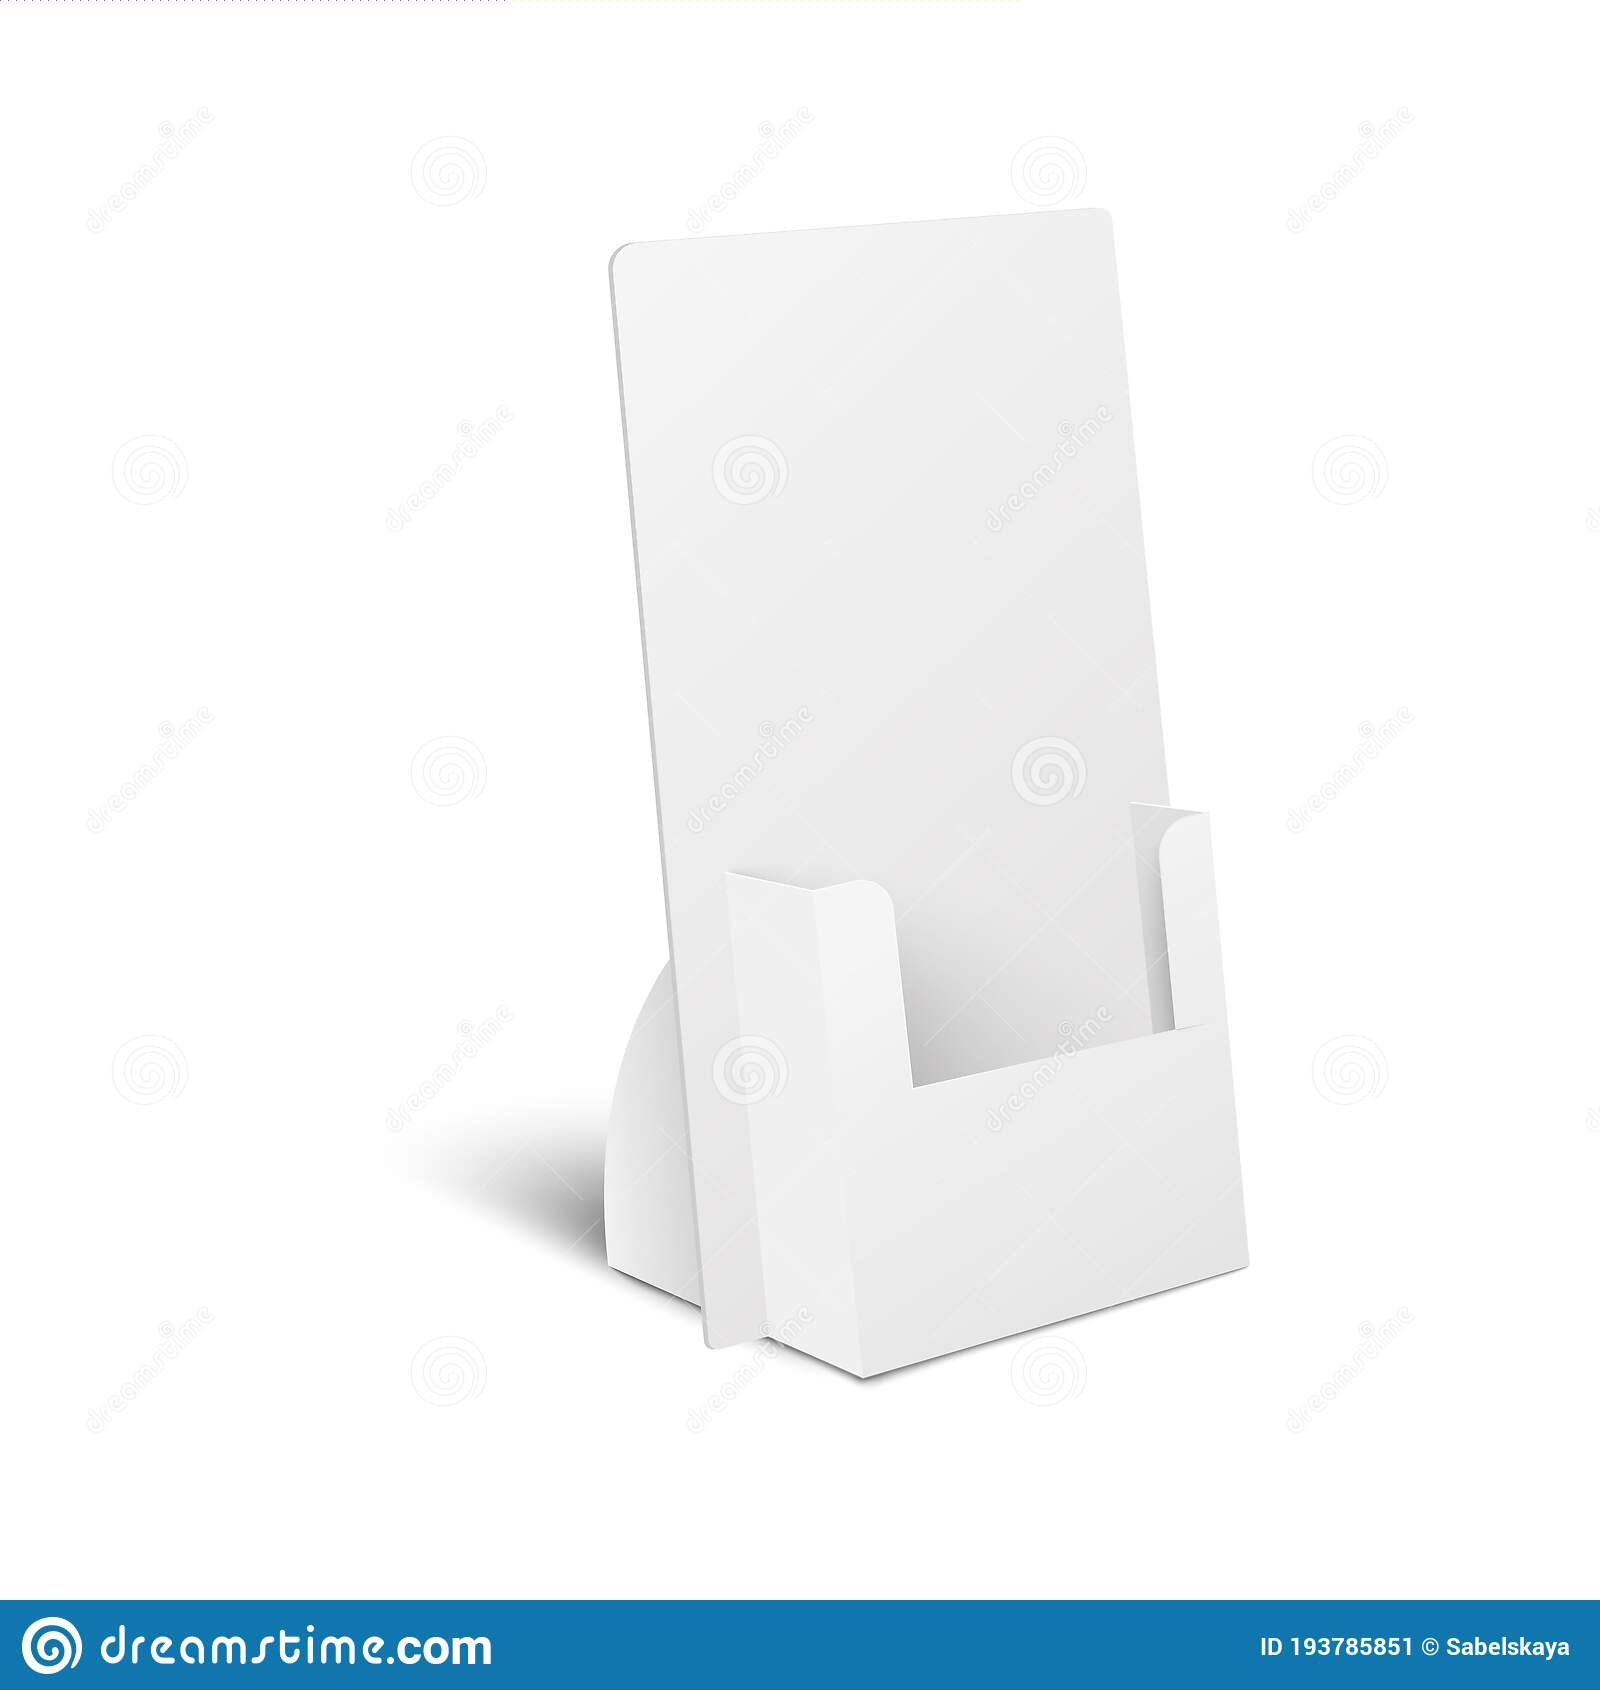 Realistic Blank Mockup of White Cardboard Stand Display for Flyers ...